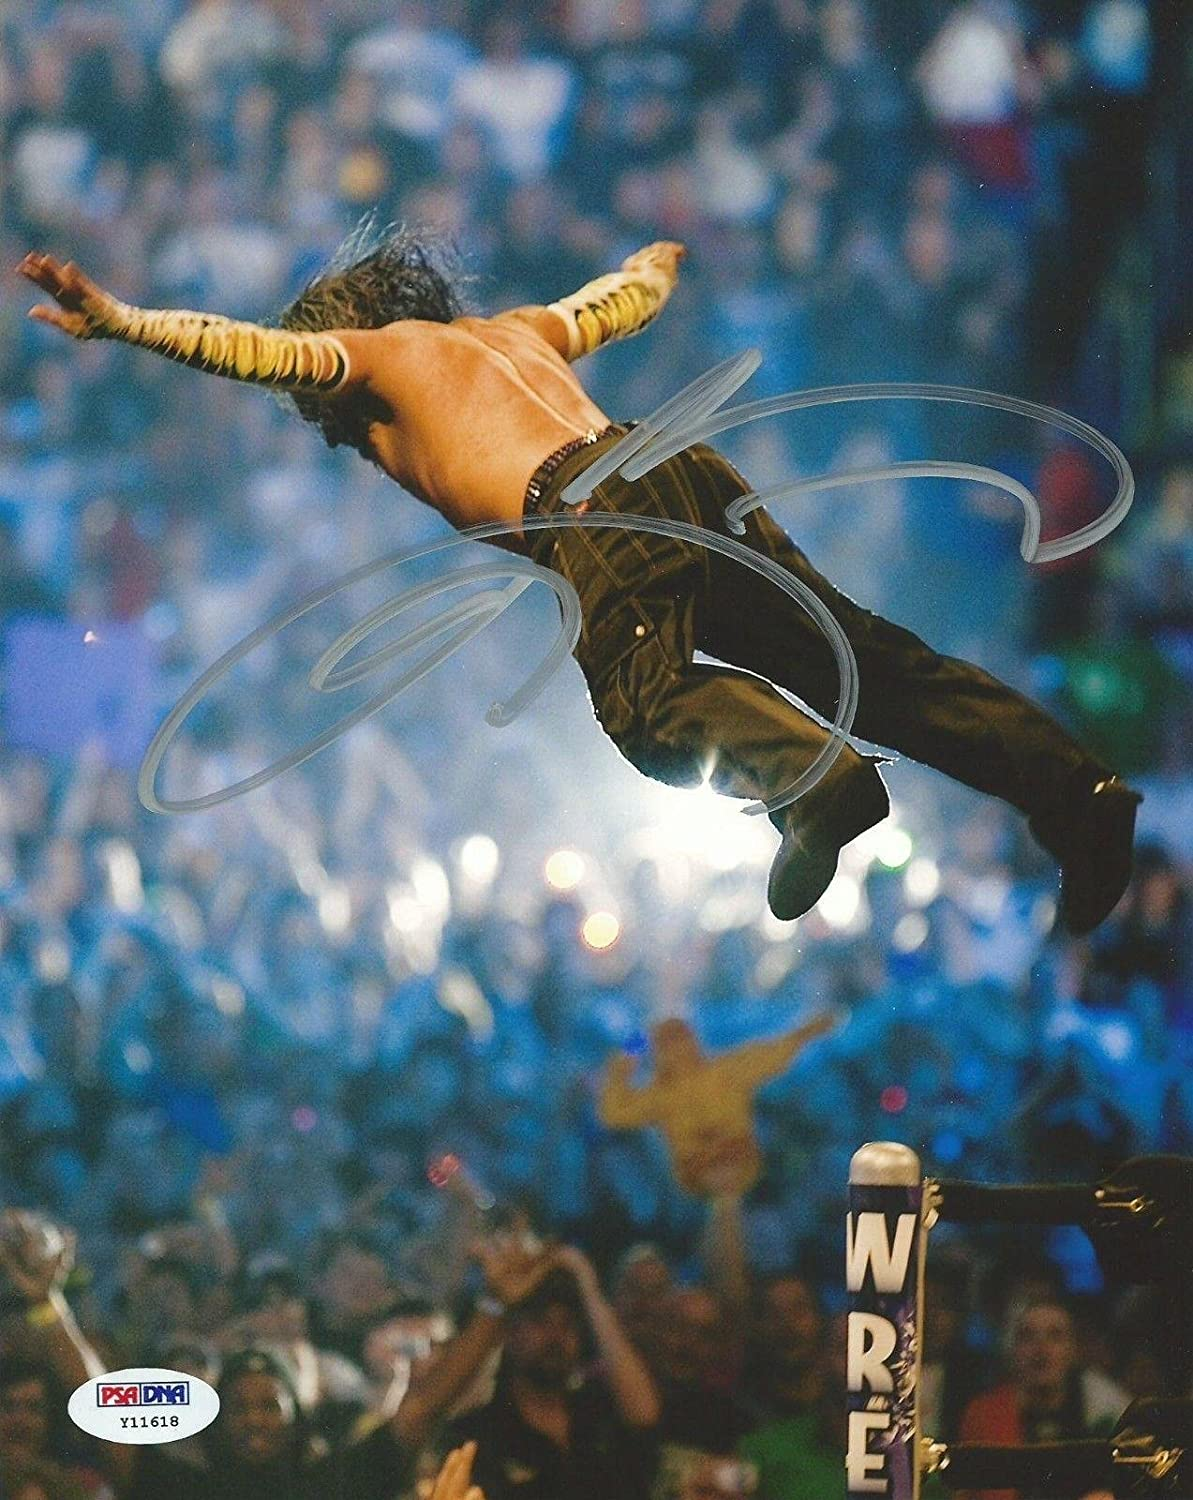 Wwe tna jeff hardy autographed 11x14 photo auto signed autograph - Jeff Hardy Signed Wwe 8x10 Photo Coa Wrestlemania 25 Picture Autograph Psa Dna Certified Autographed Wrestling Photos At Amazon S Sports Collectibles